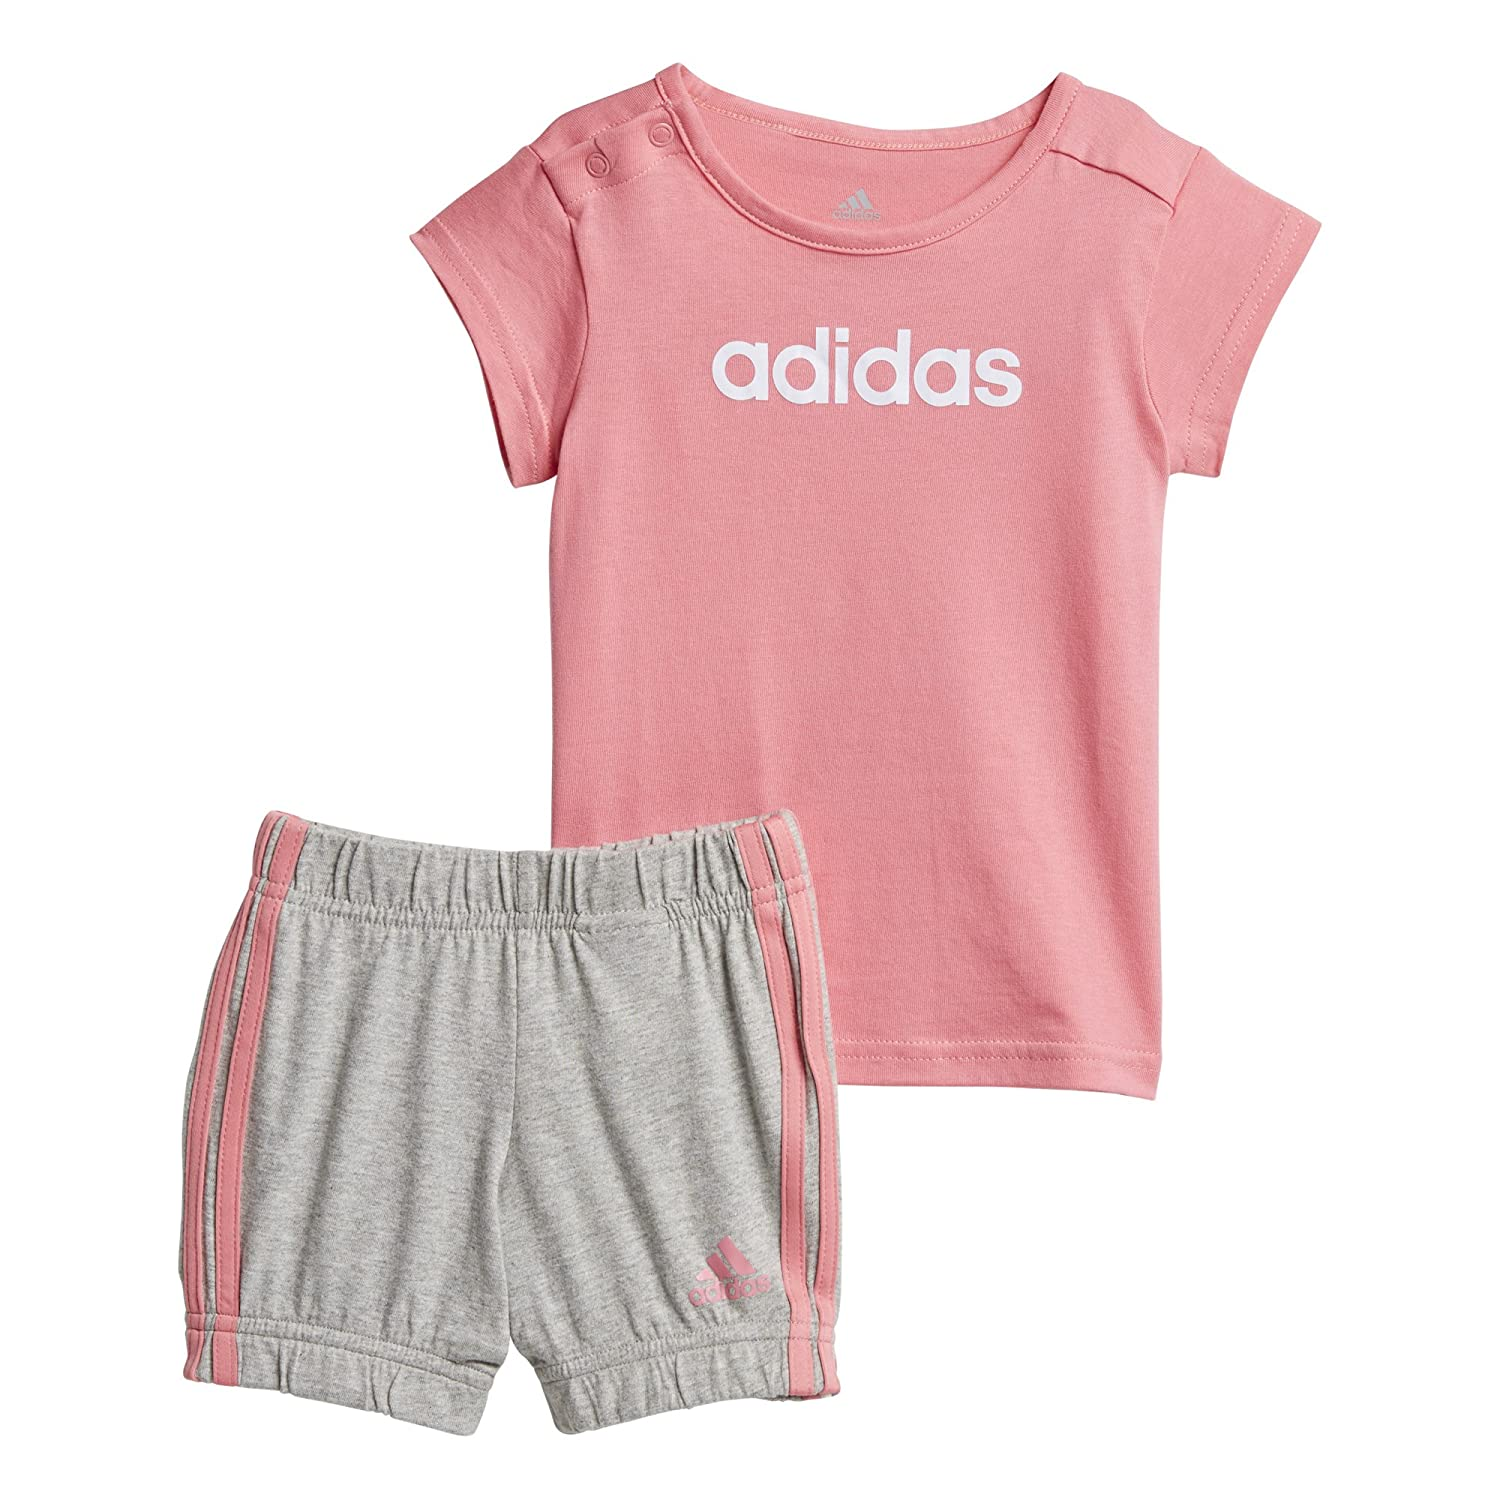 adidas Infant Girls Summer Easy Set CF7412-PARENT